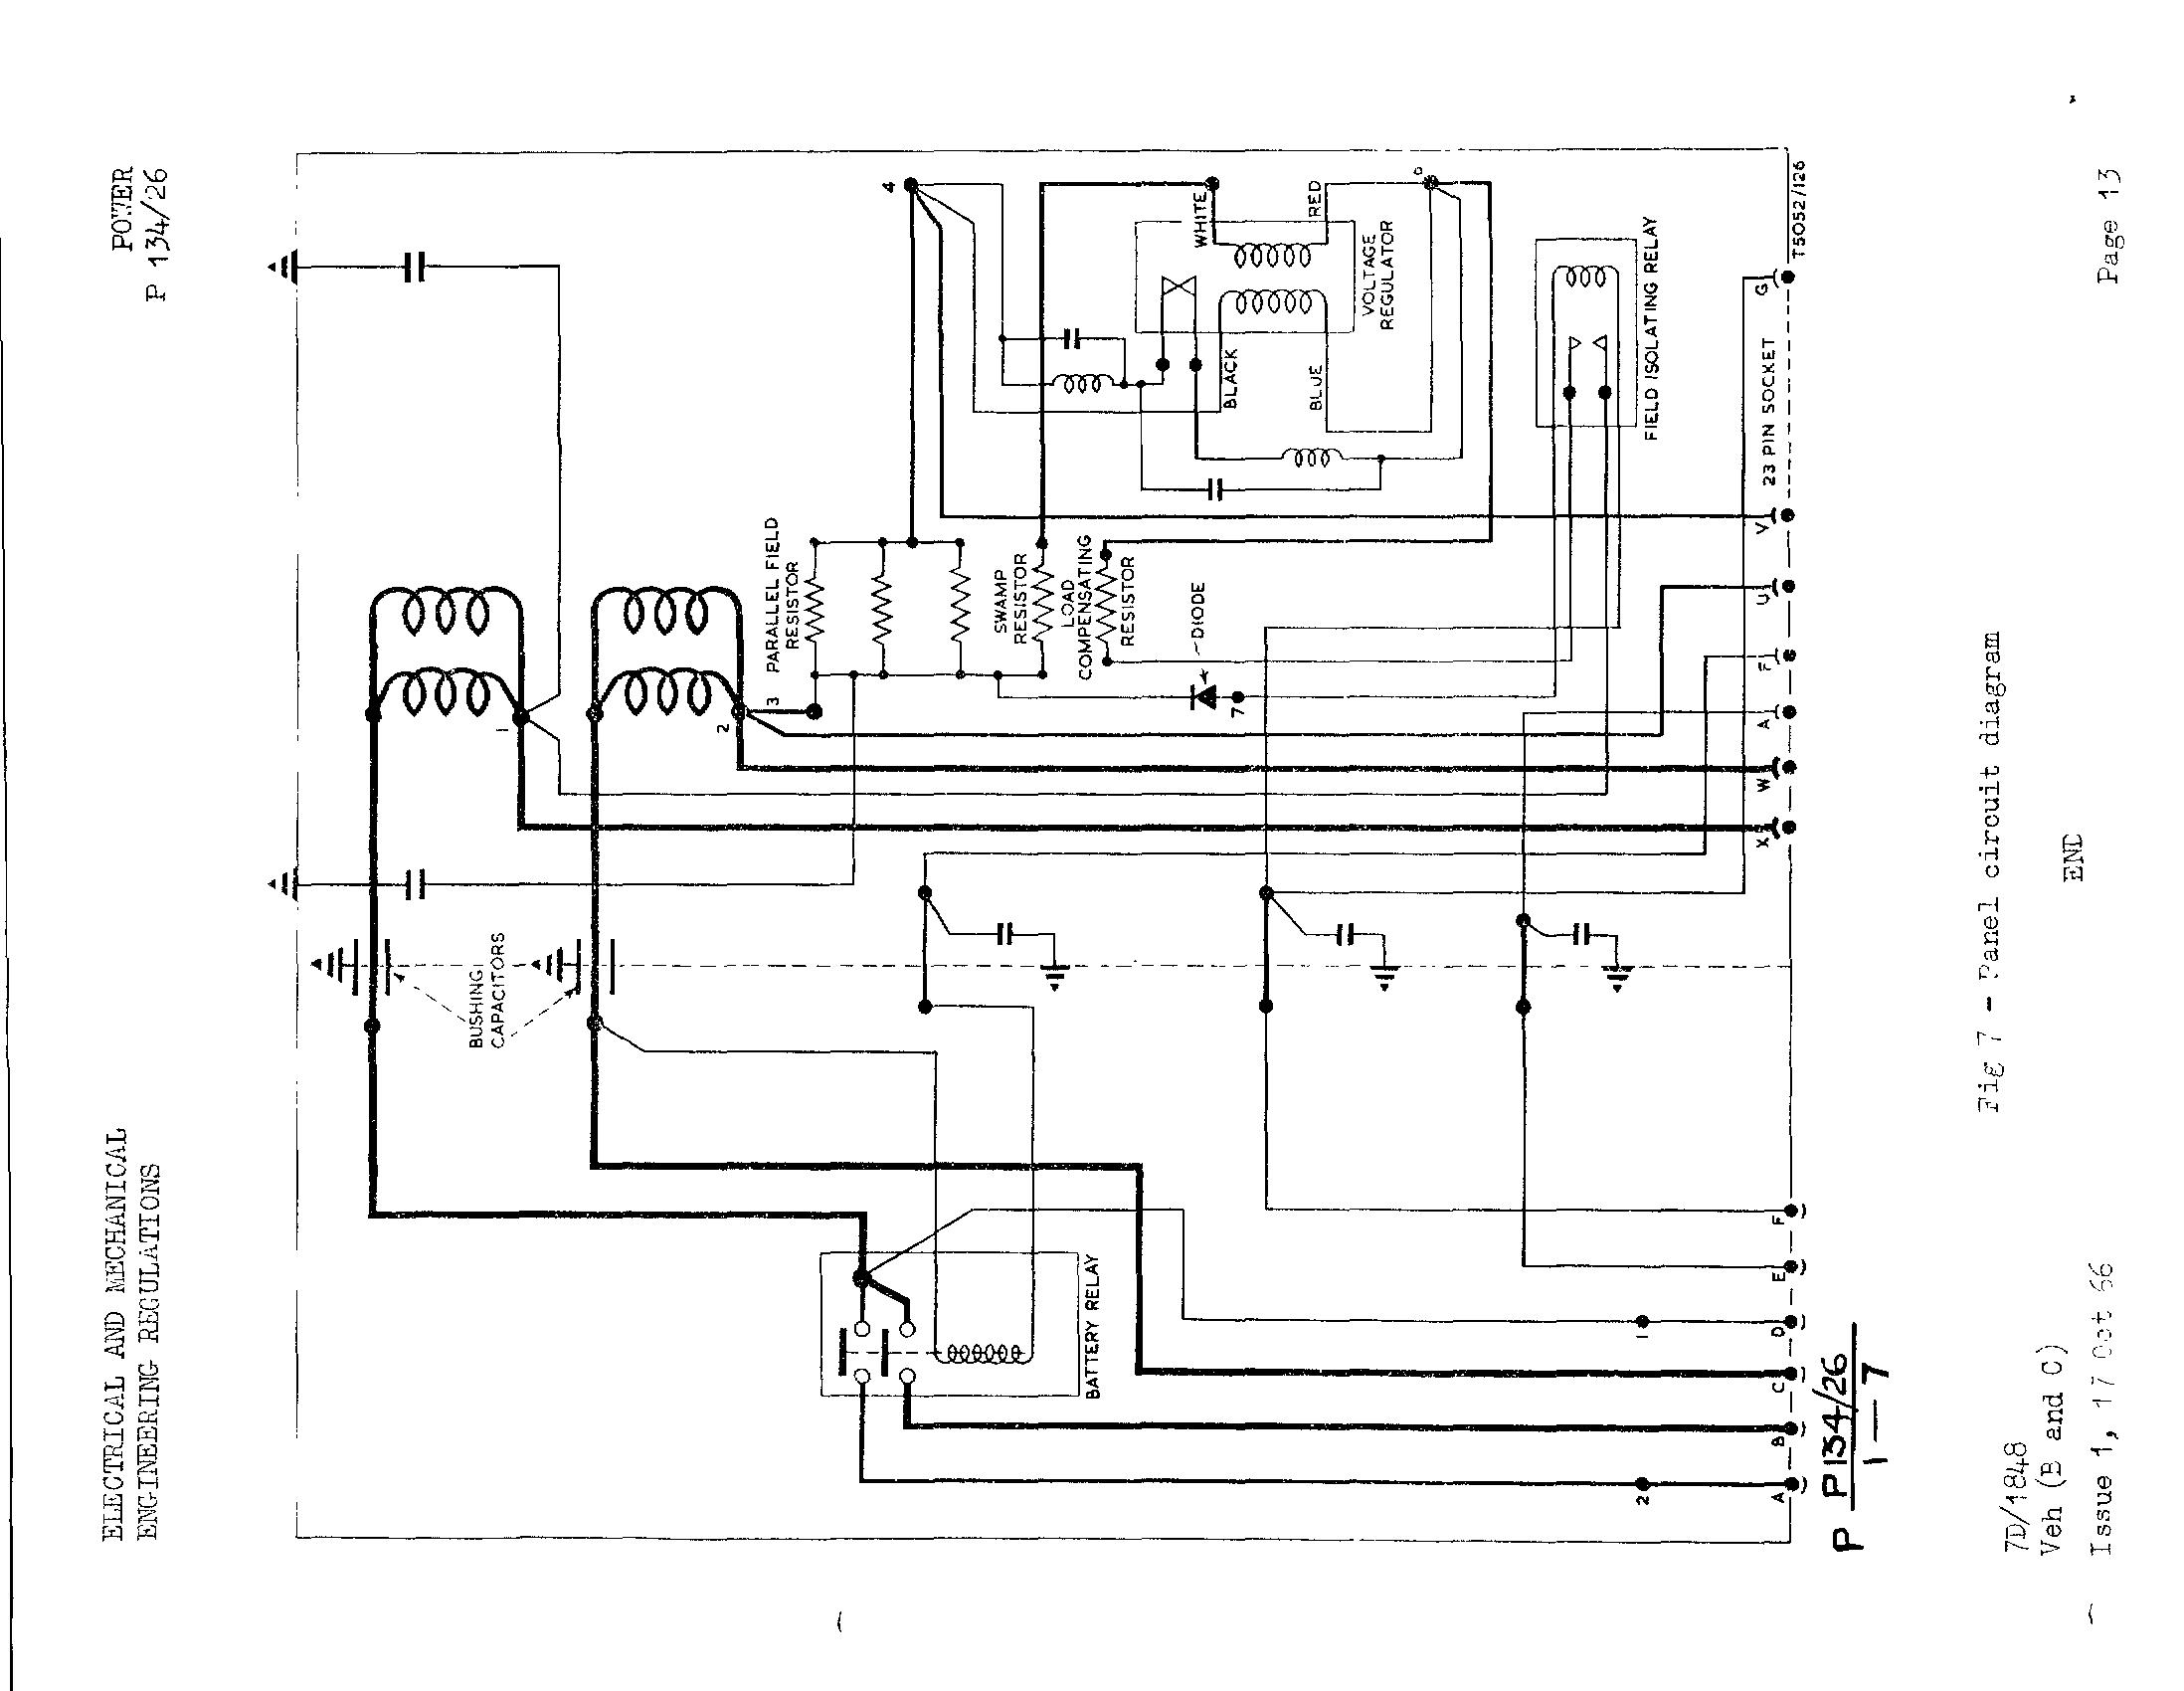 Land Rover Ffr Wiring Diagram Just Another Blog Library Rh 69 Skriptoase De Discovery Engine